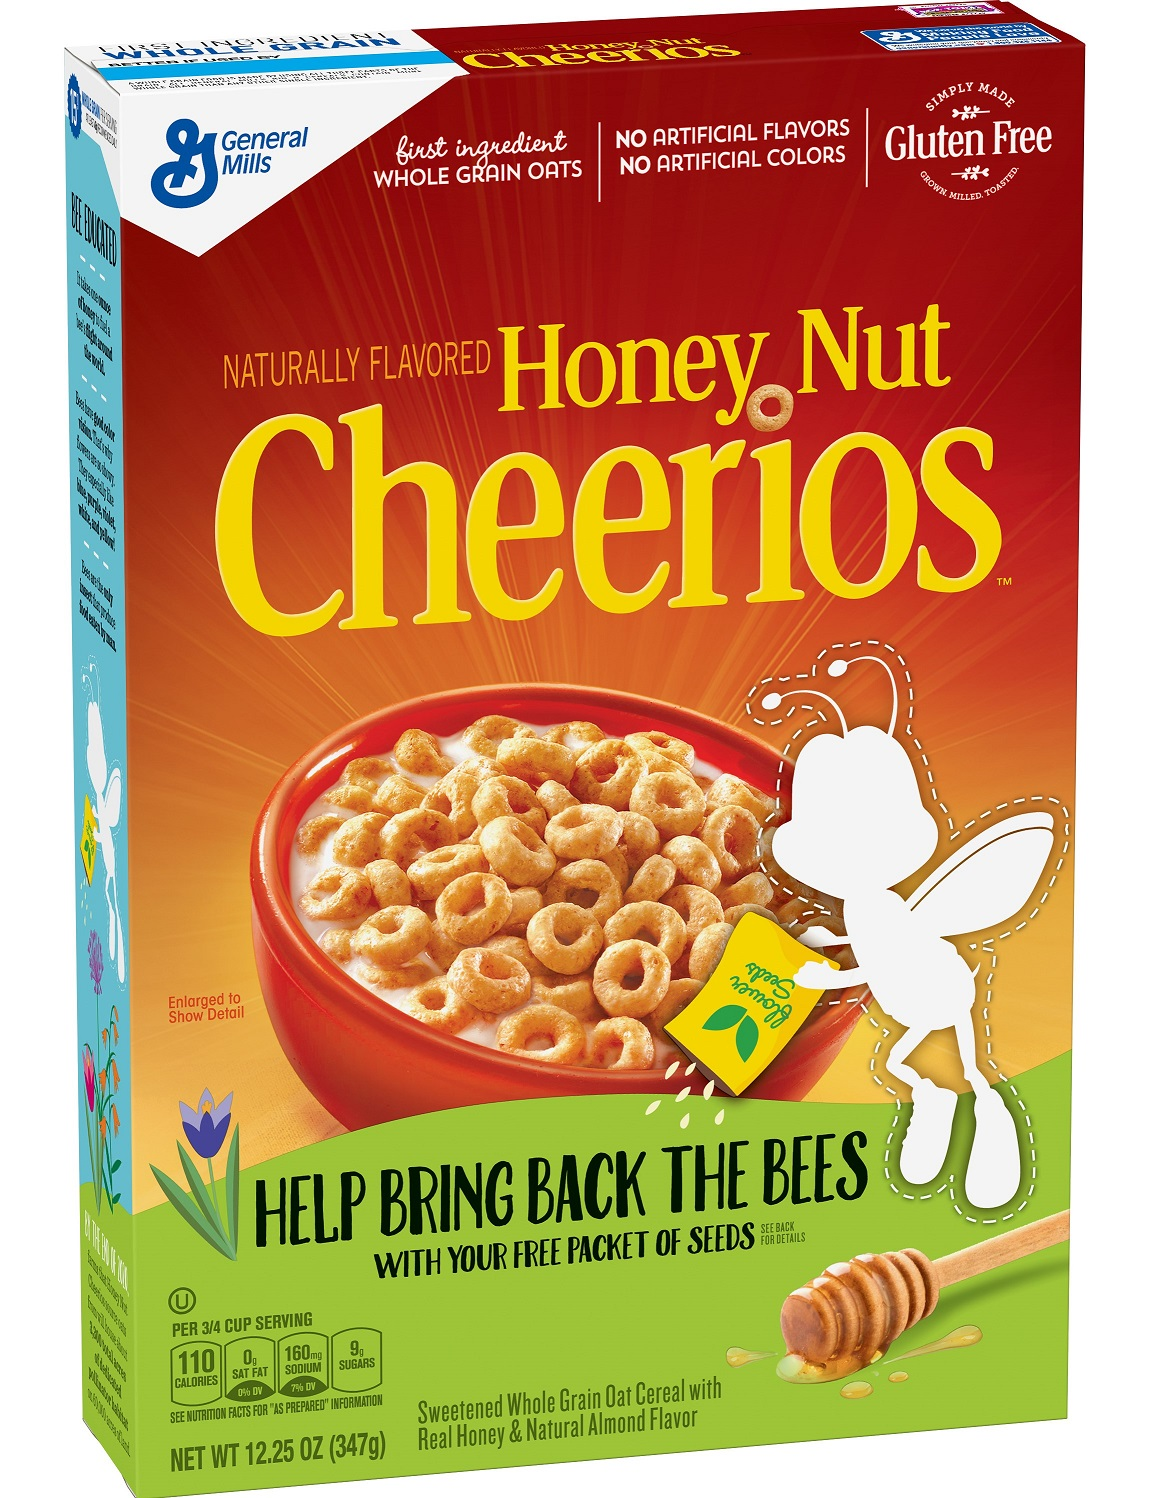 BuzzBee is missing from Honey Nut Cheerios boxes to raise pollinator awareness. (image handout: General Mills)